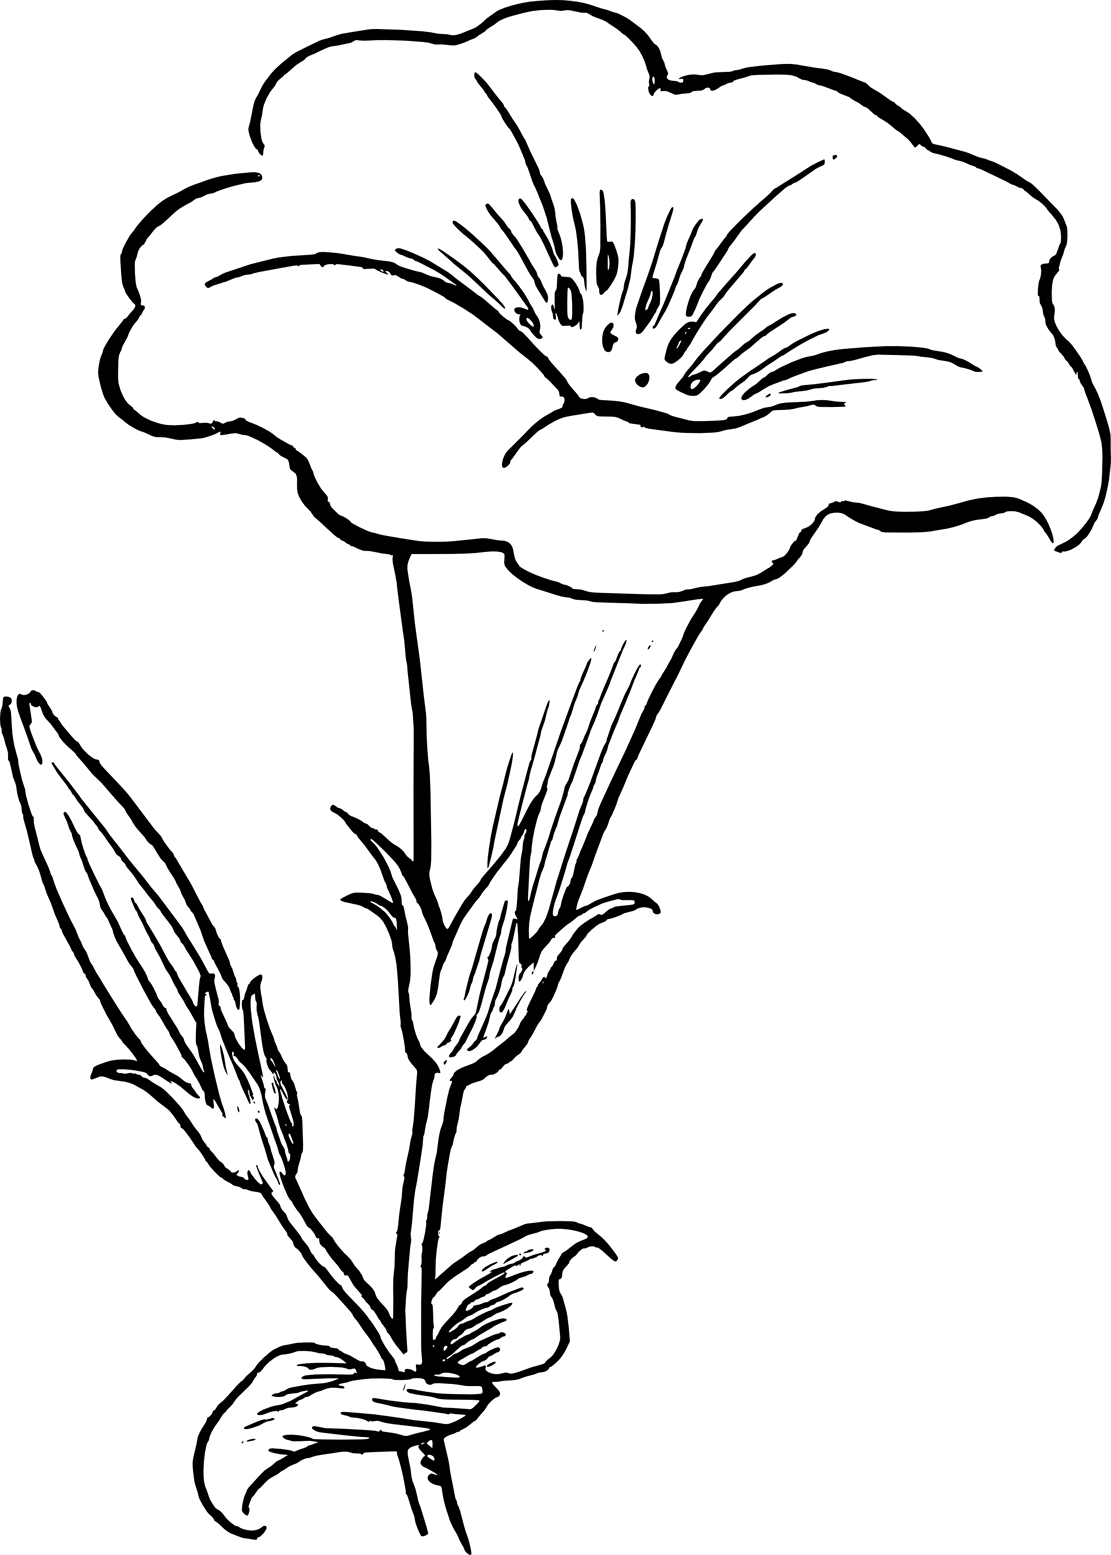 Flower stem black and white clipart clip art royalty free Floral Drawings - ClipArt Best | Painting practice drawings ... clip art royalty free